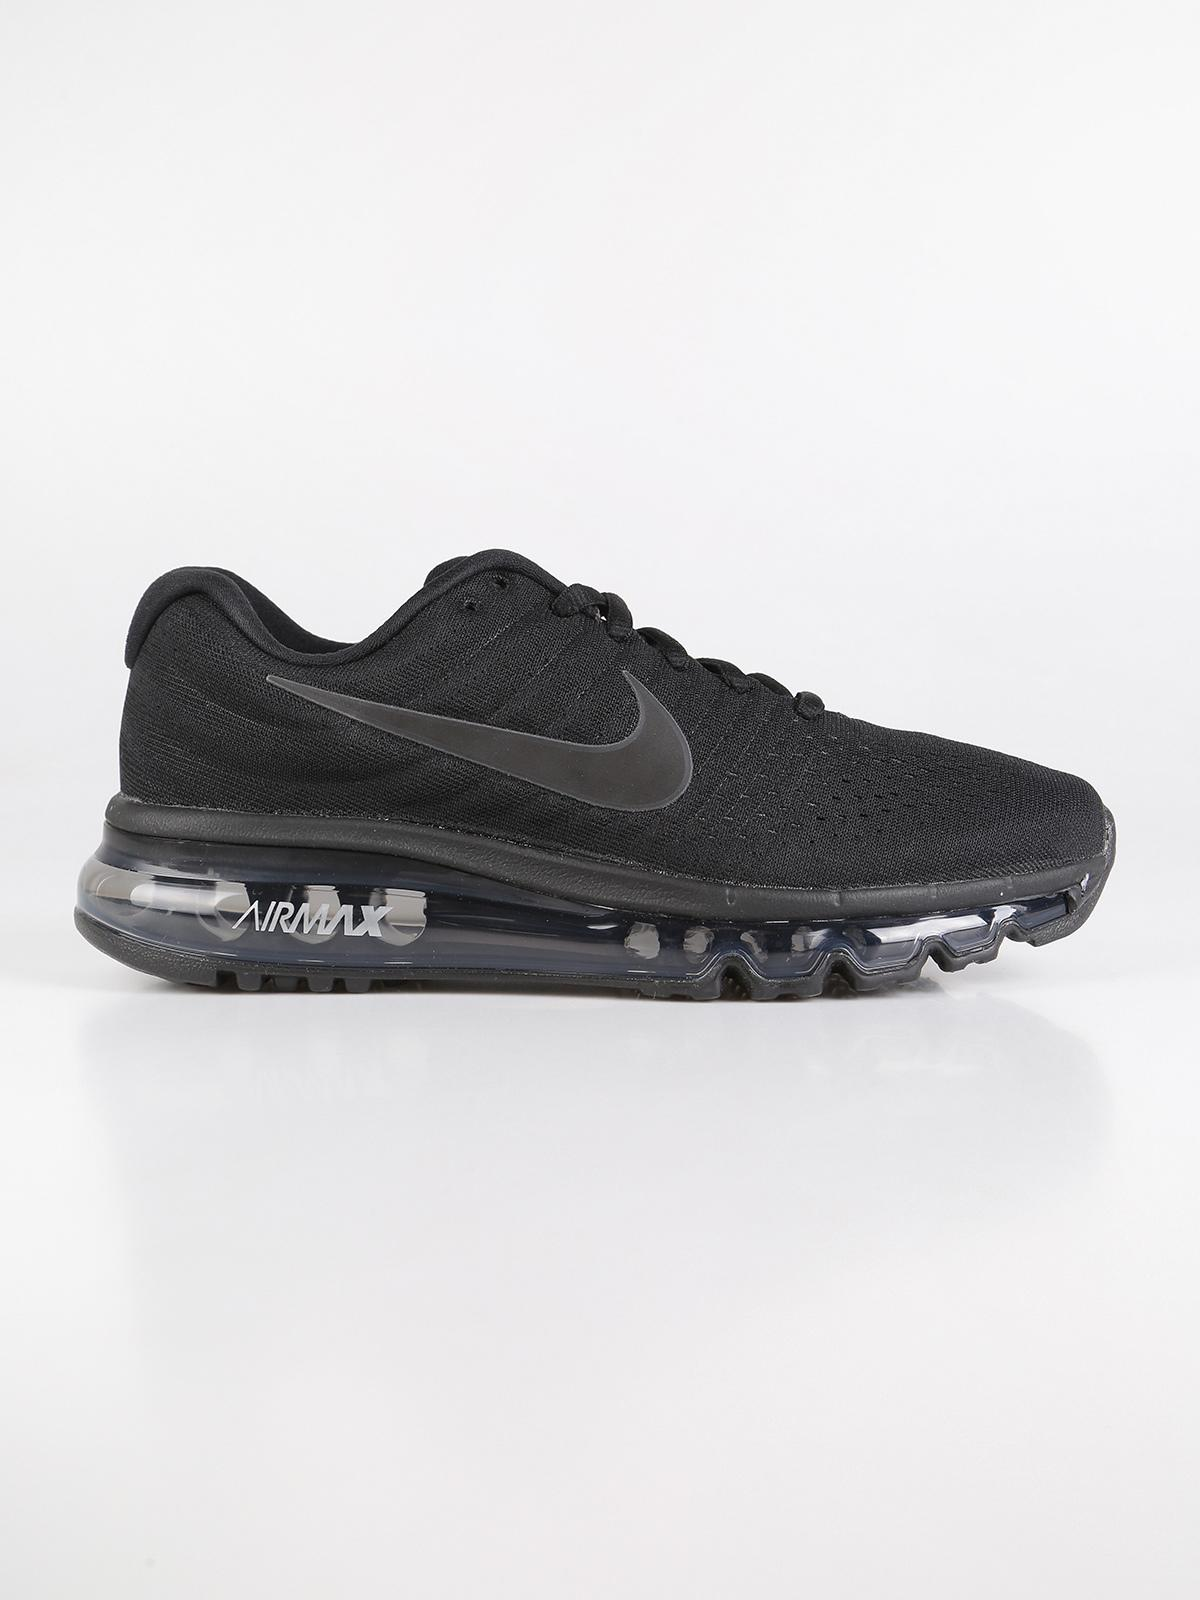 nike air max donna 2017 nere